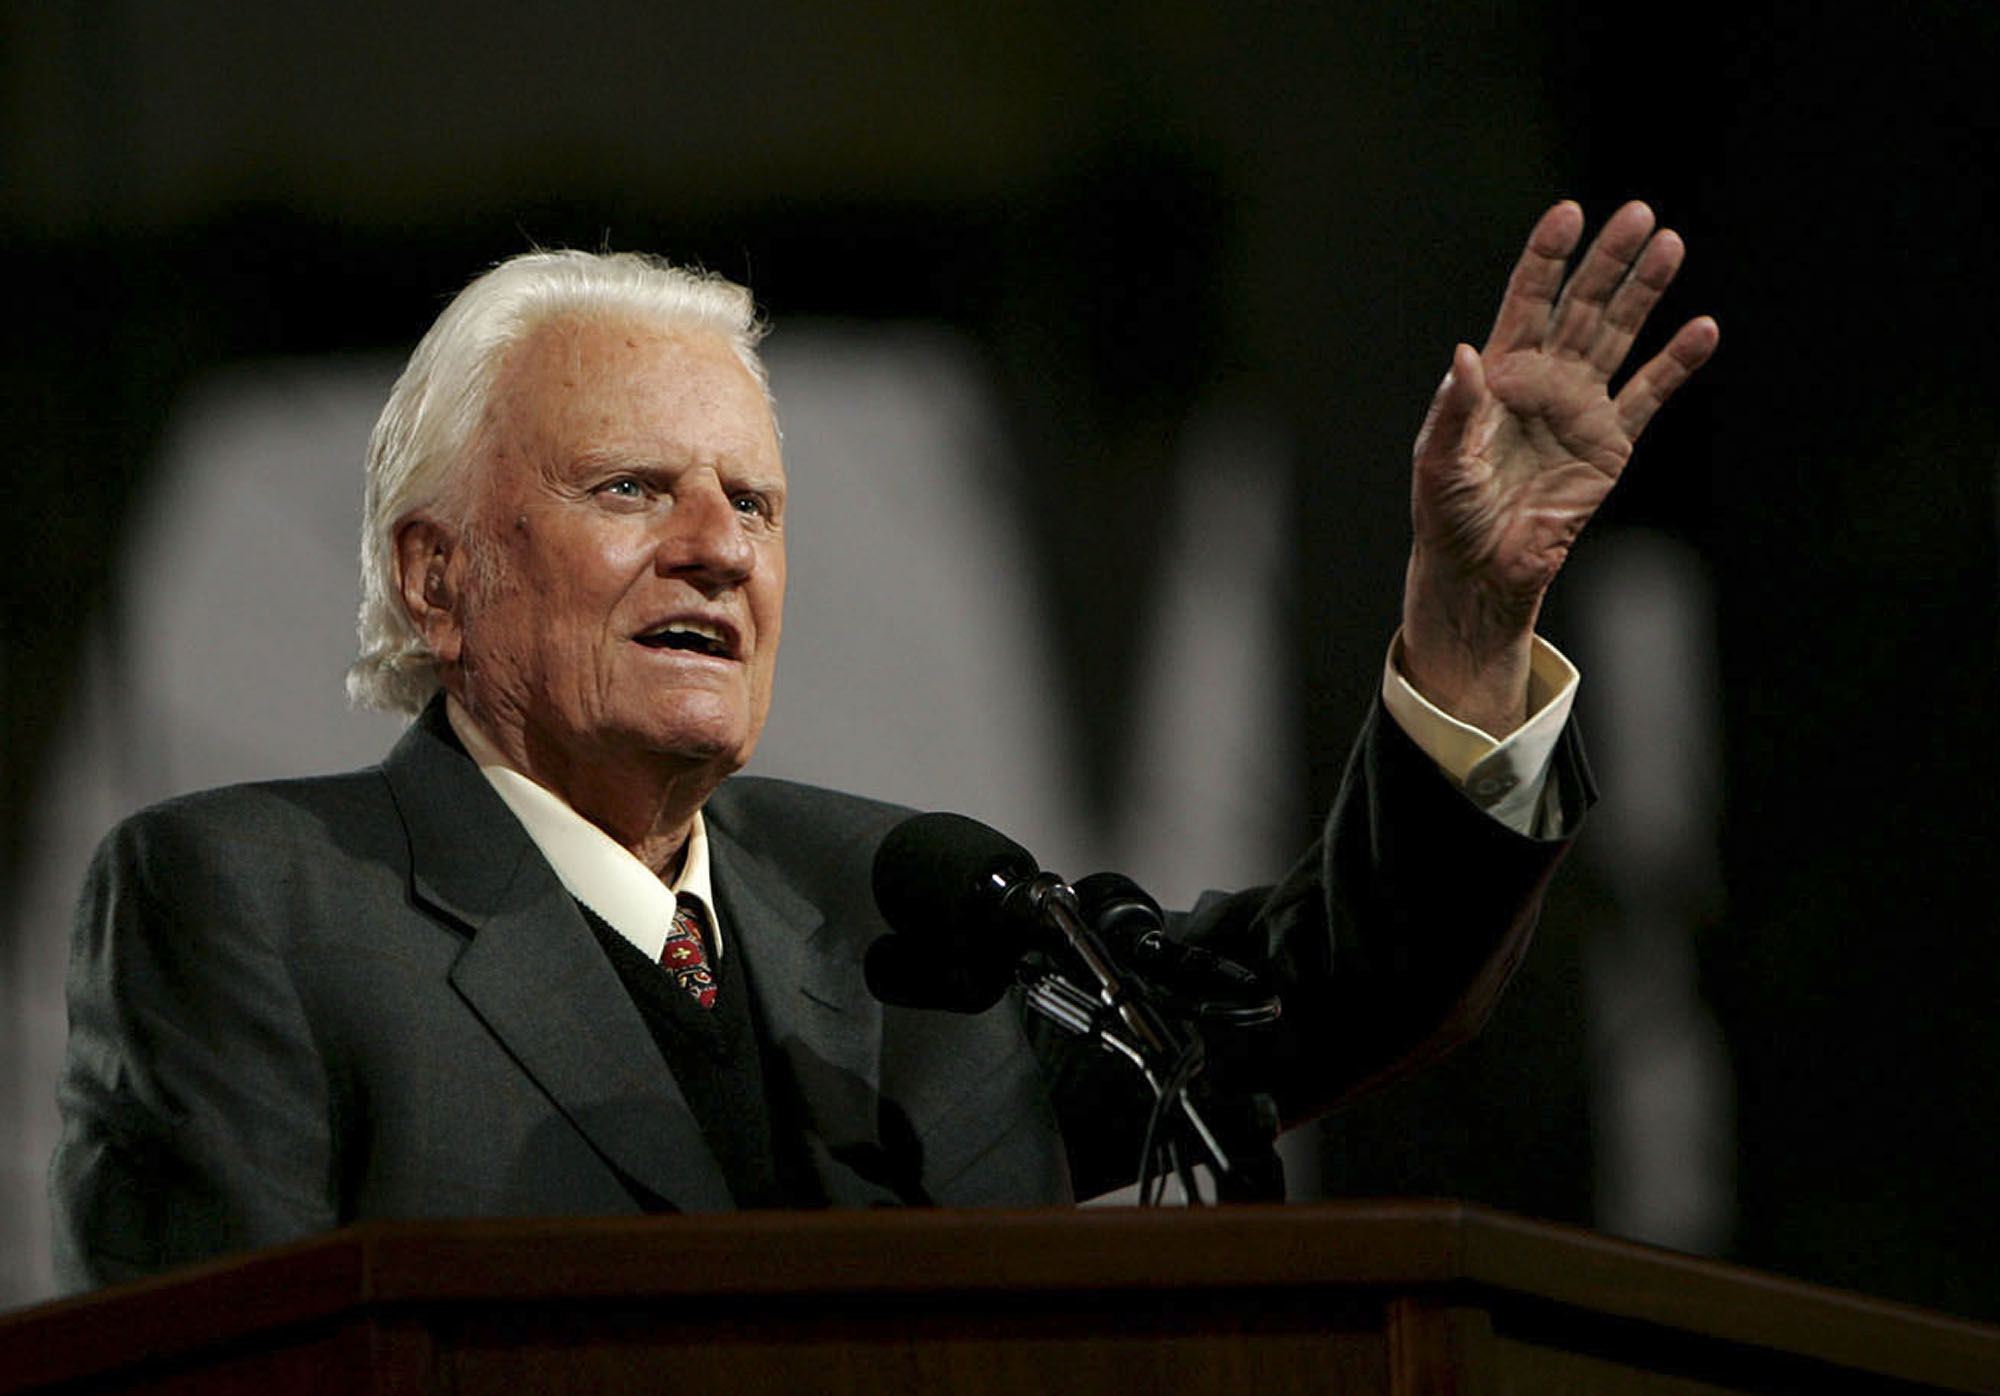 ee billy graham chaplains - HD2000×1396